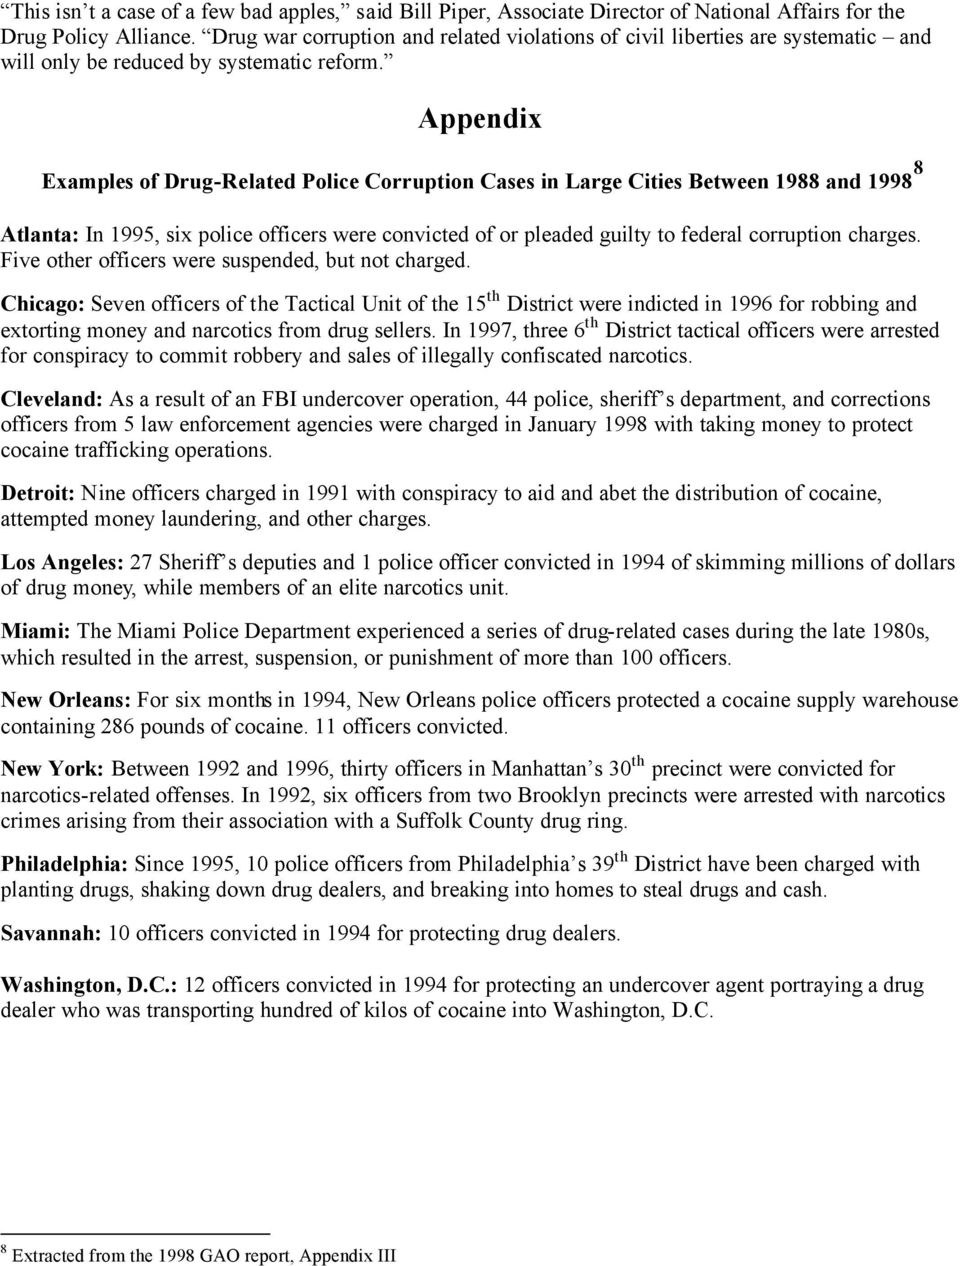 Appendix Examples of Drug-Related Police Corruption Cases in Large Cities Between 1988 and 1998 8 Atlanta: In 1995, six police officers were convicted of or pleaded guilty to federal corruption